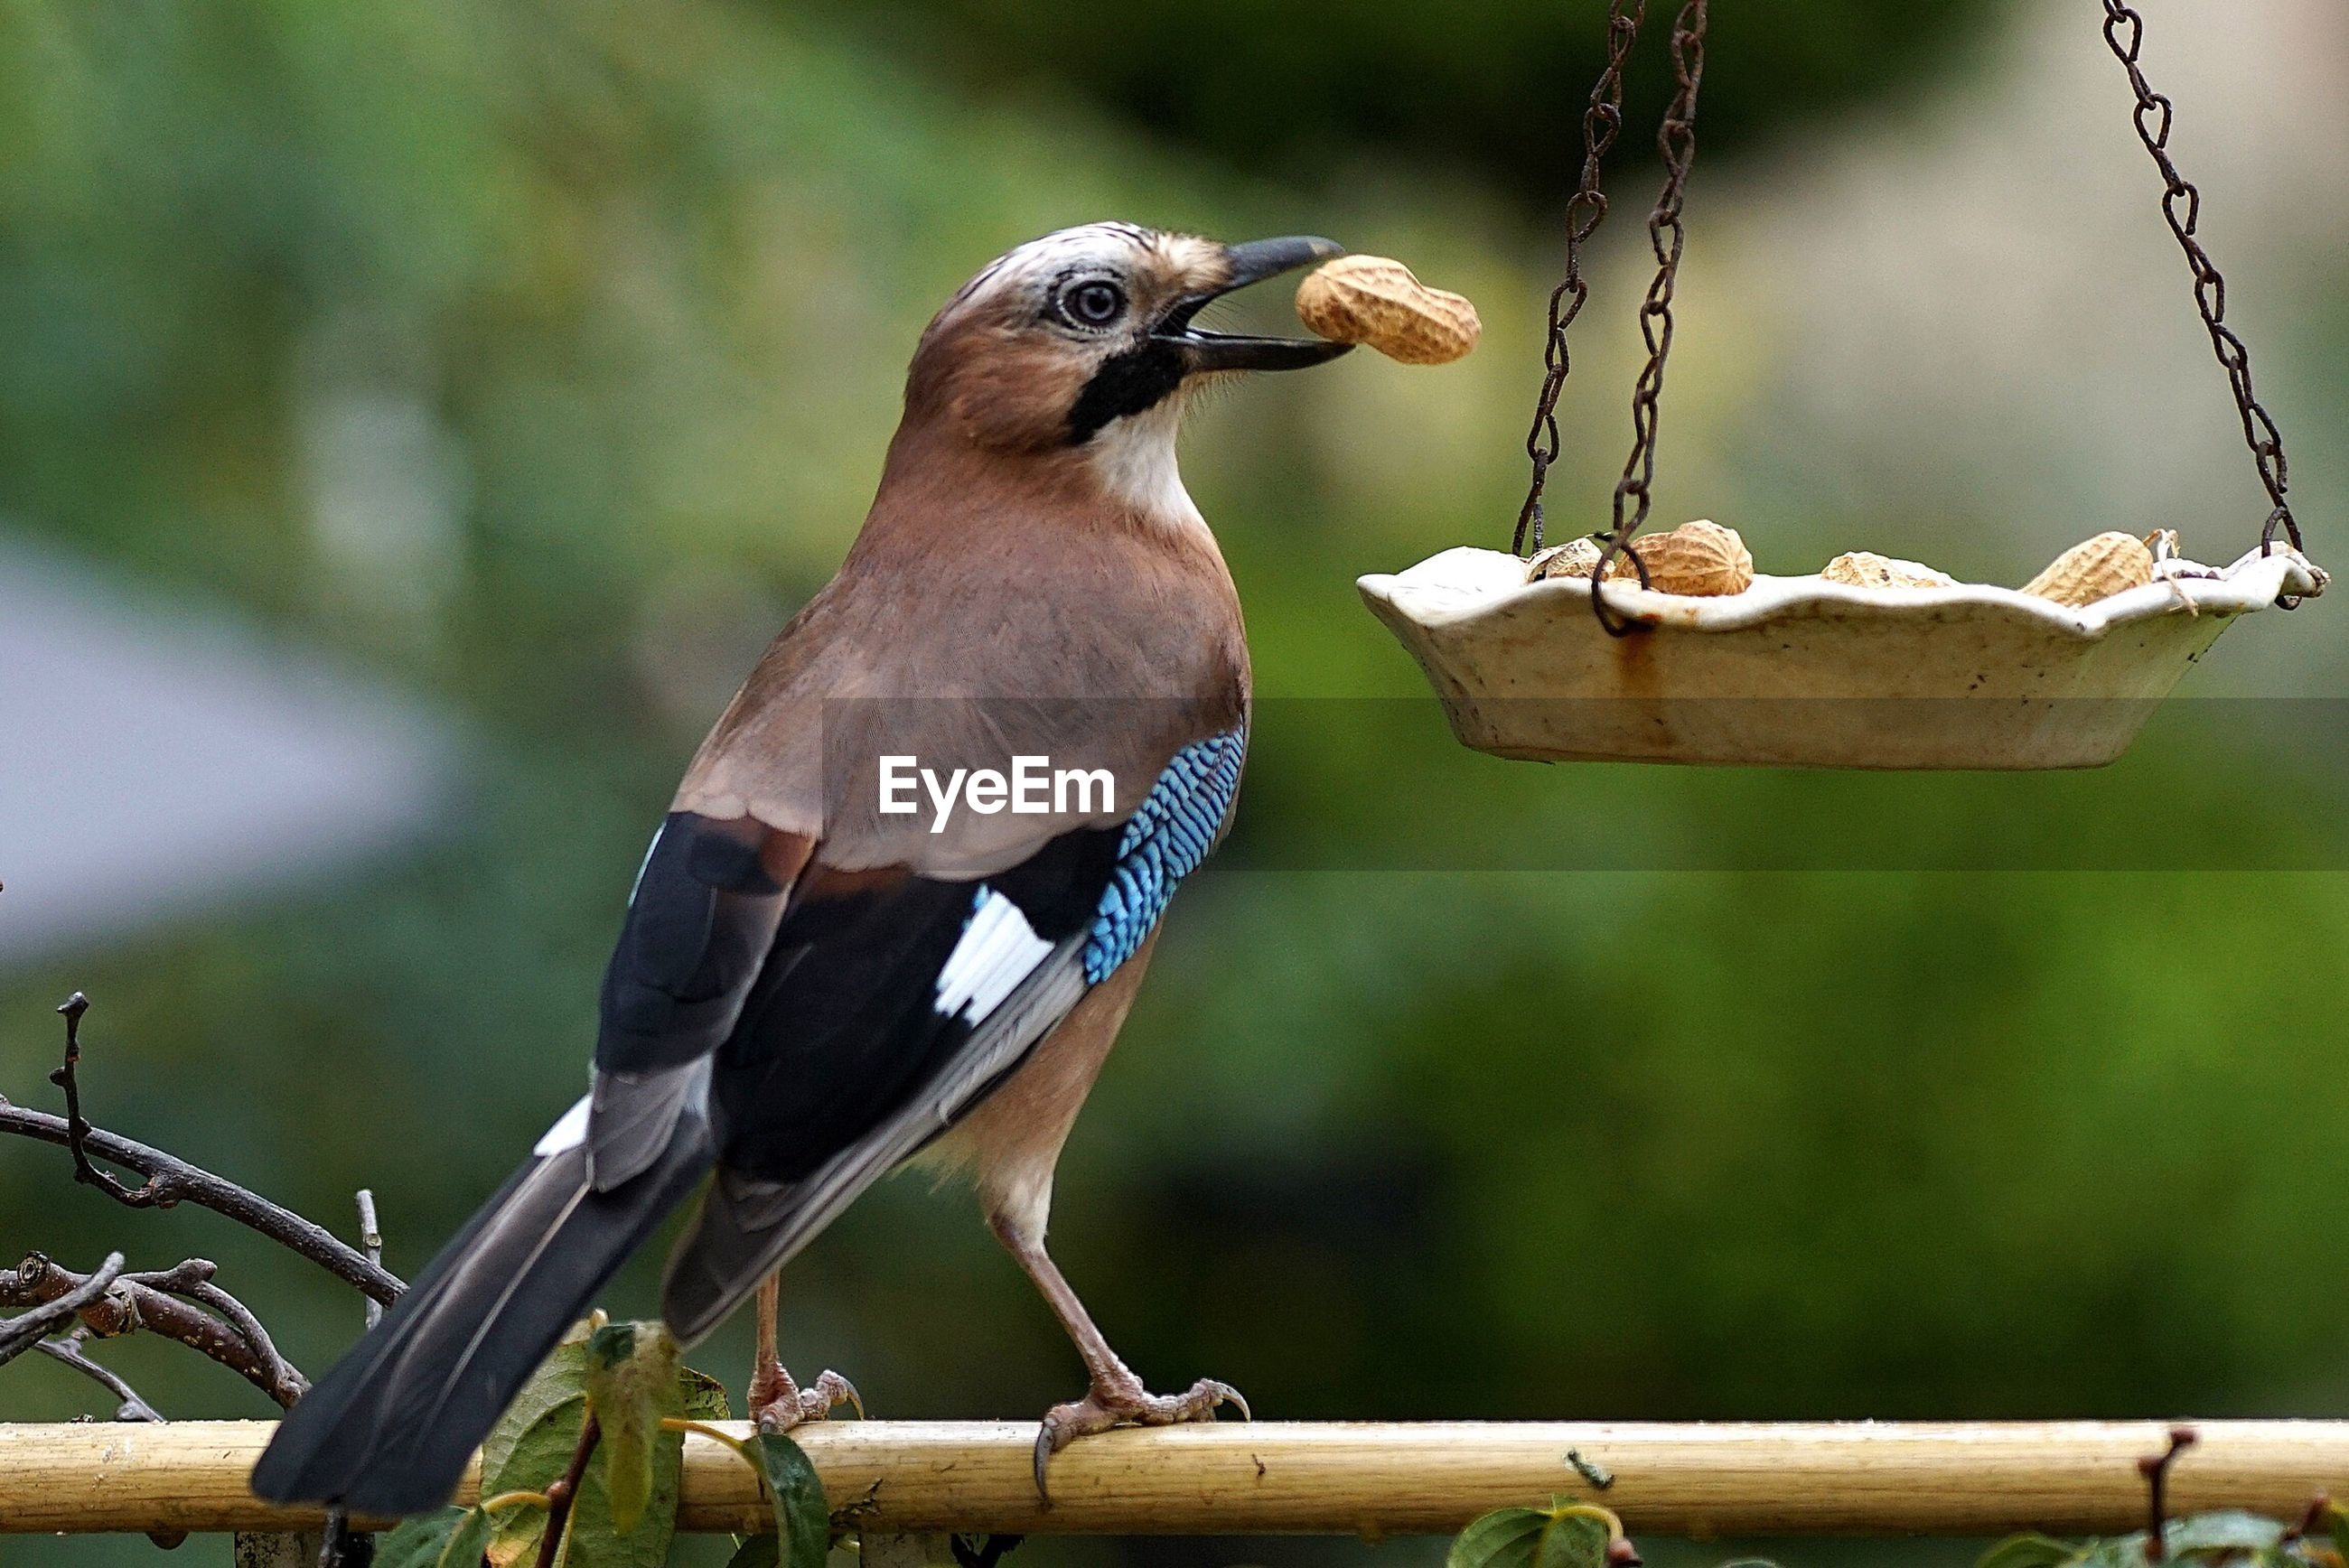 Close-up of eurasian jay with peanut by bird feeder